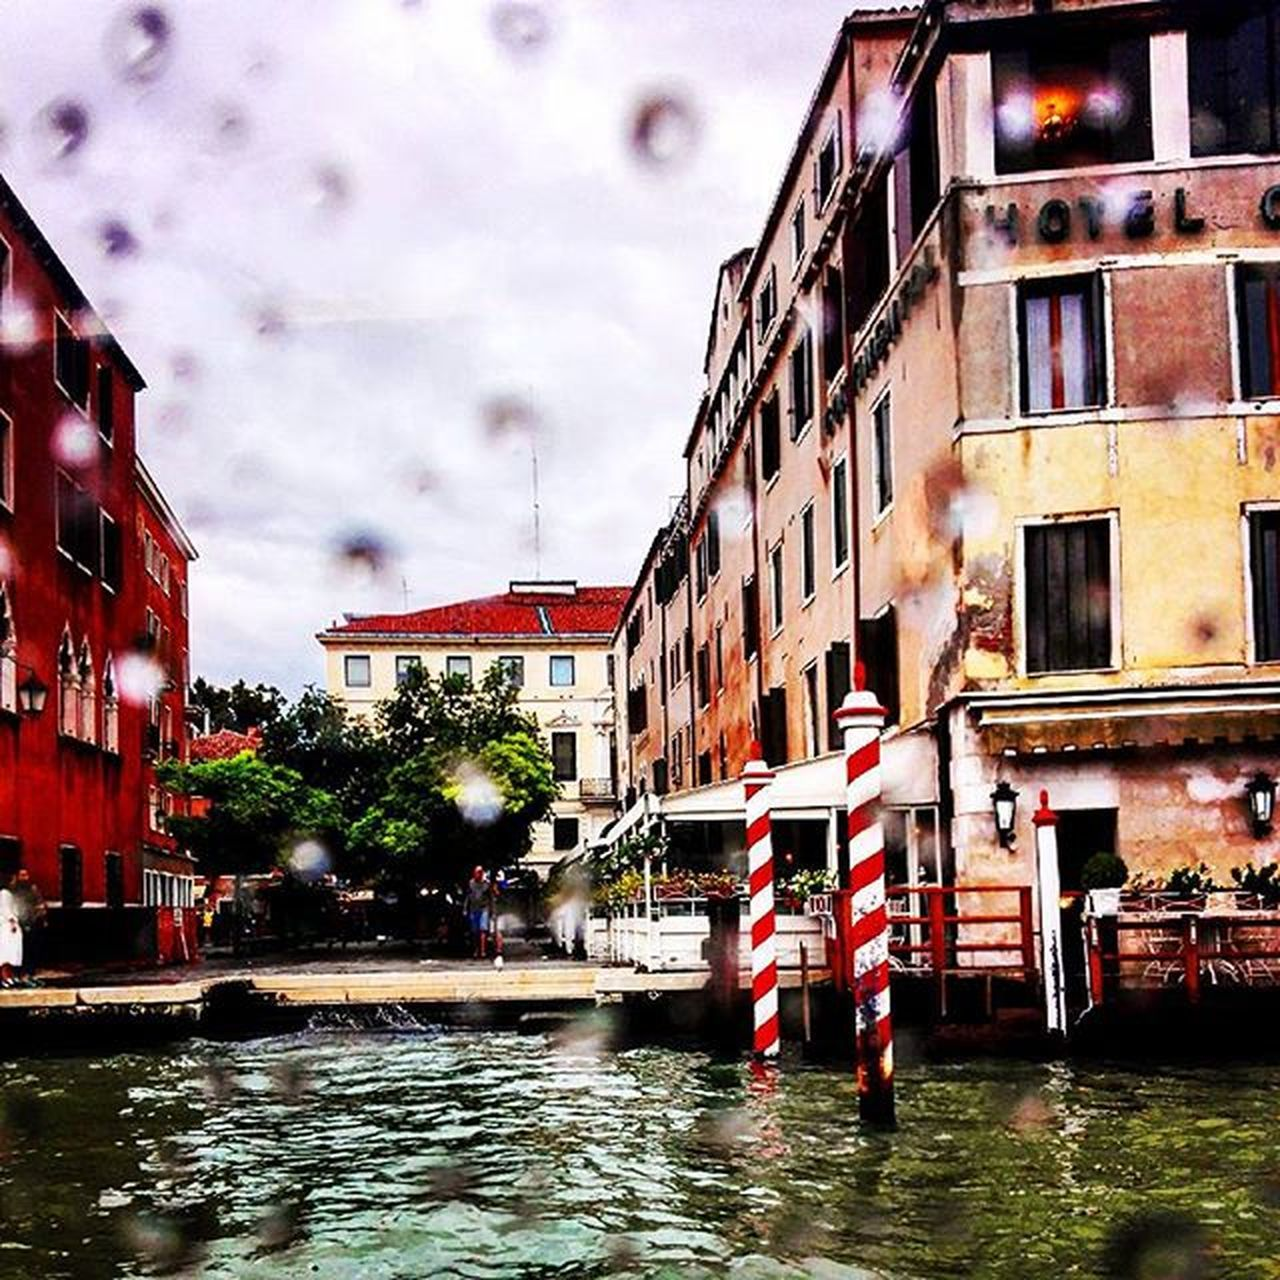 building exterior, architecture, water, built structure, waterfront, outdoors, cloud - sky, sky, canal, wet, flood, city, day, puddle, no people